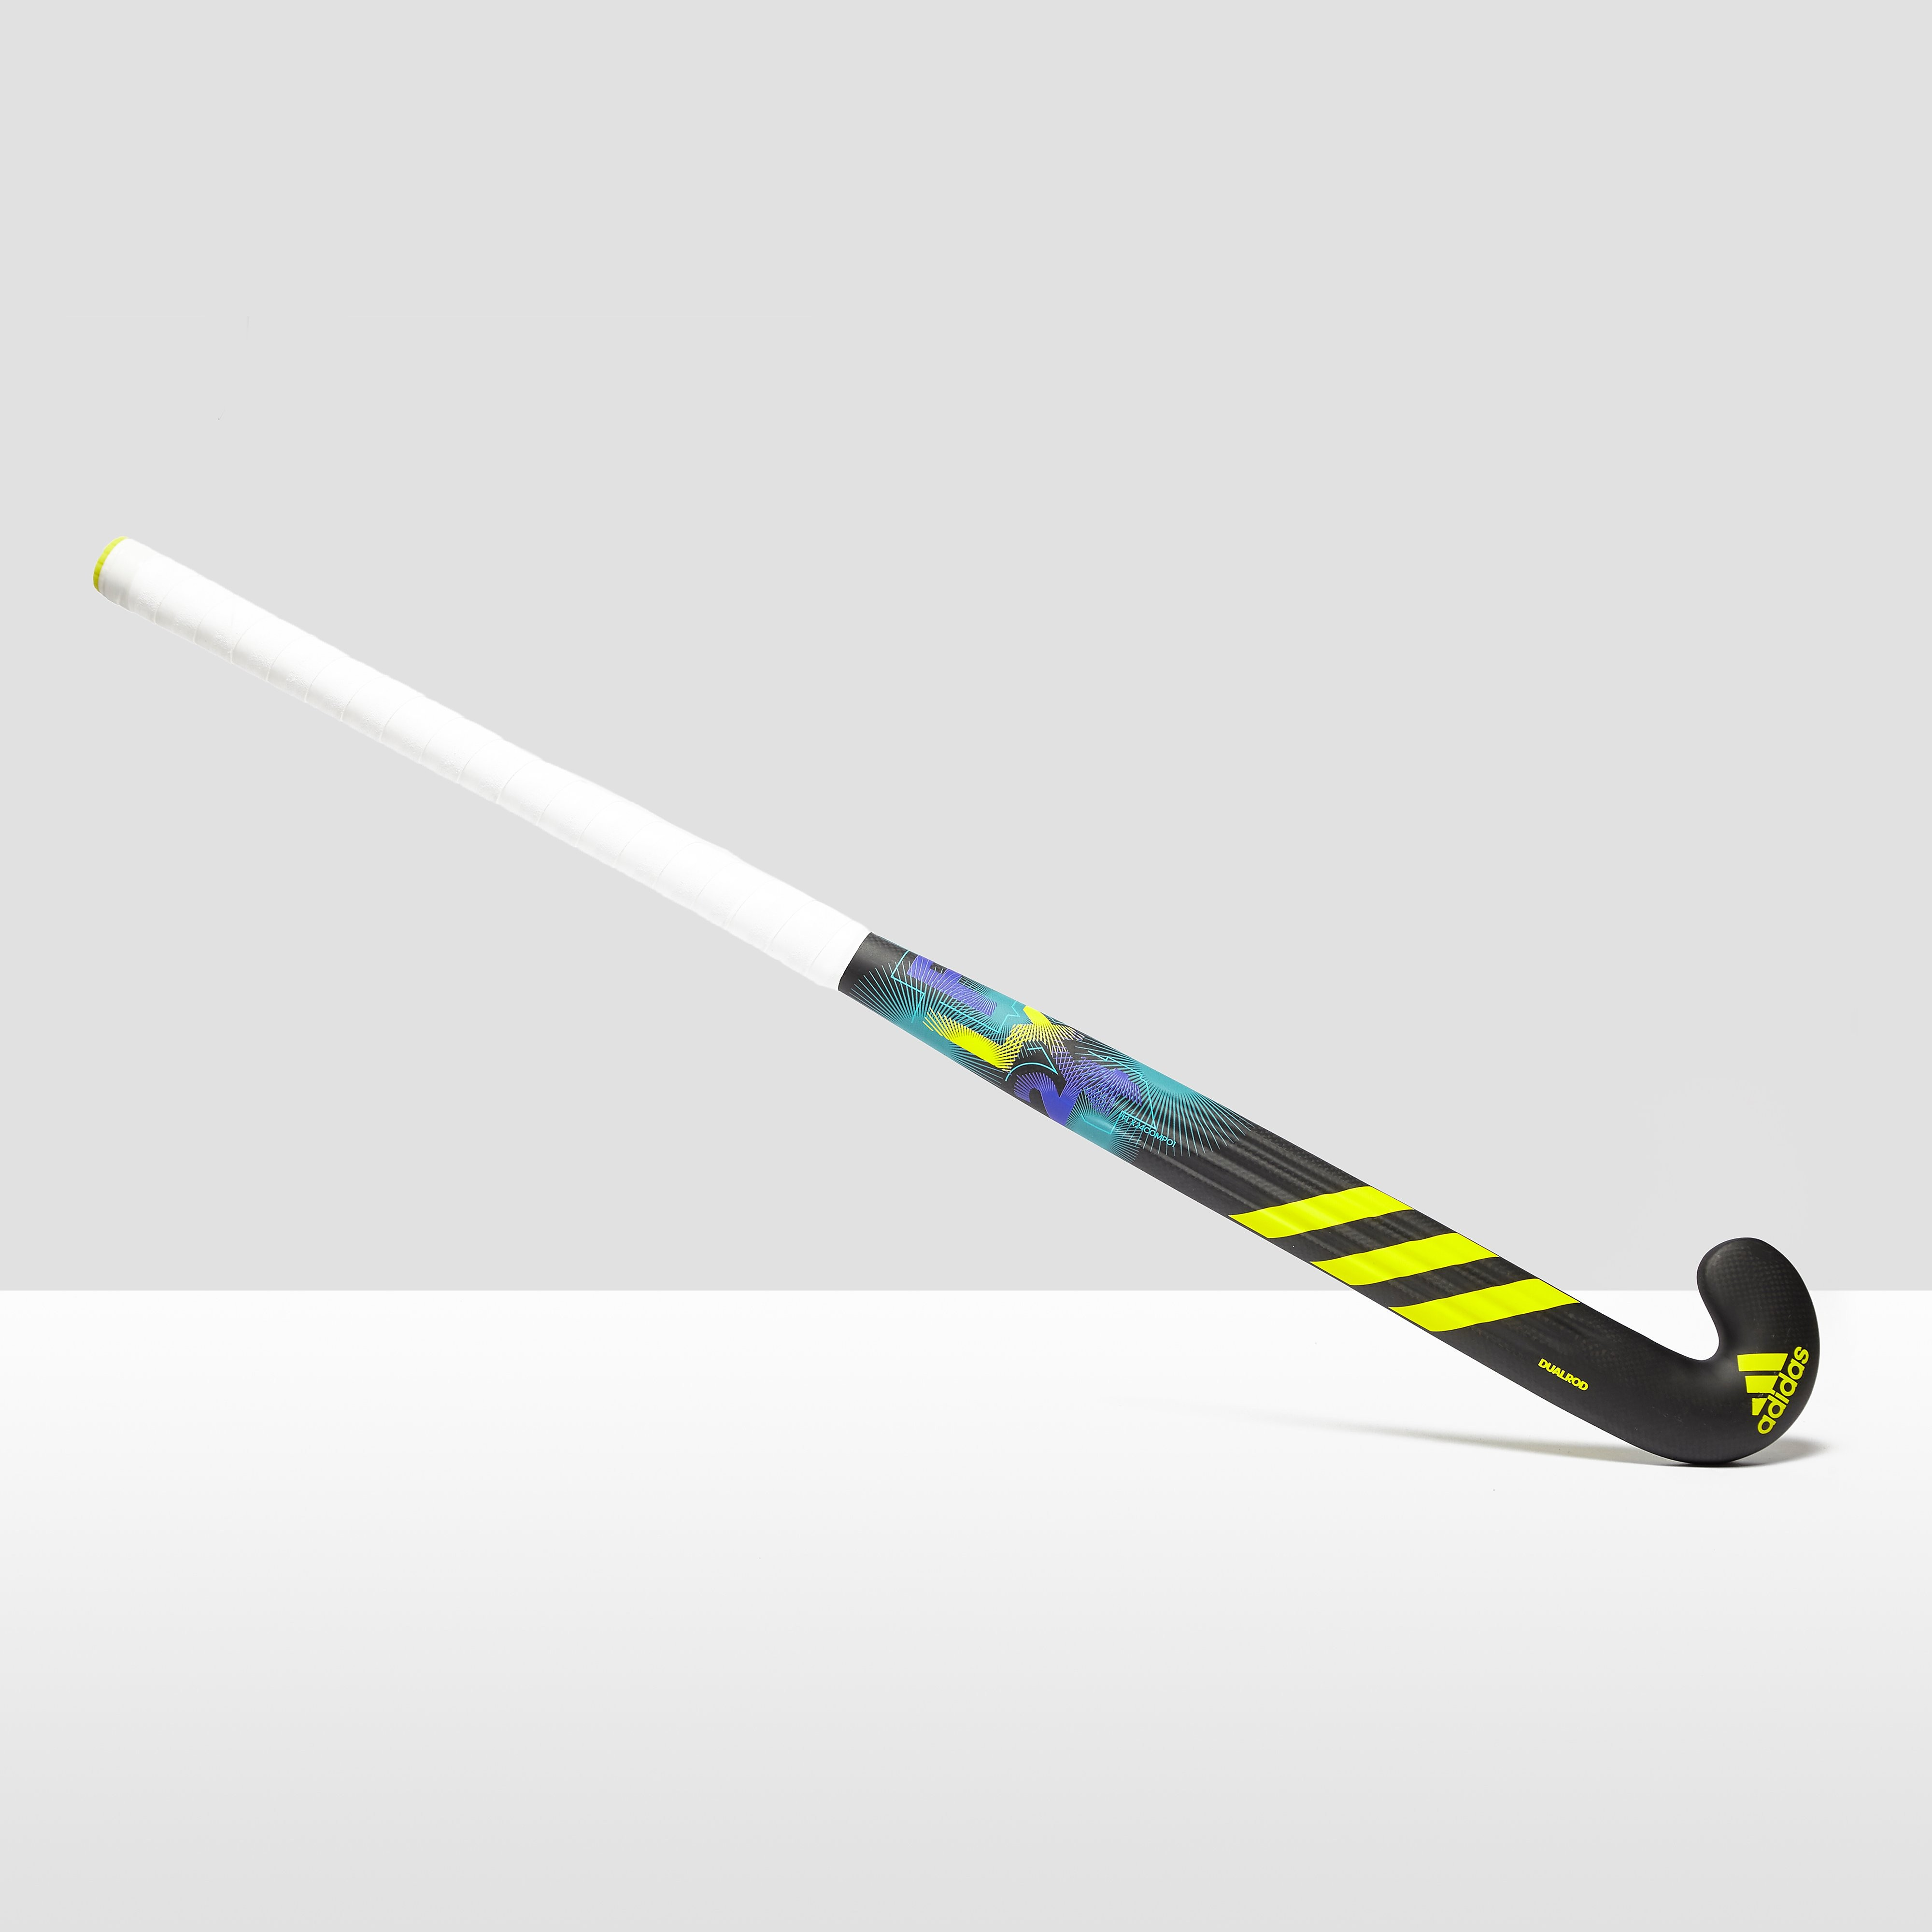 adidas FLX24 Compo 1 Women's Hockey Stick